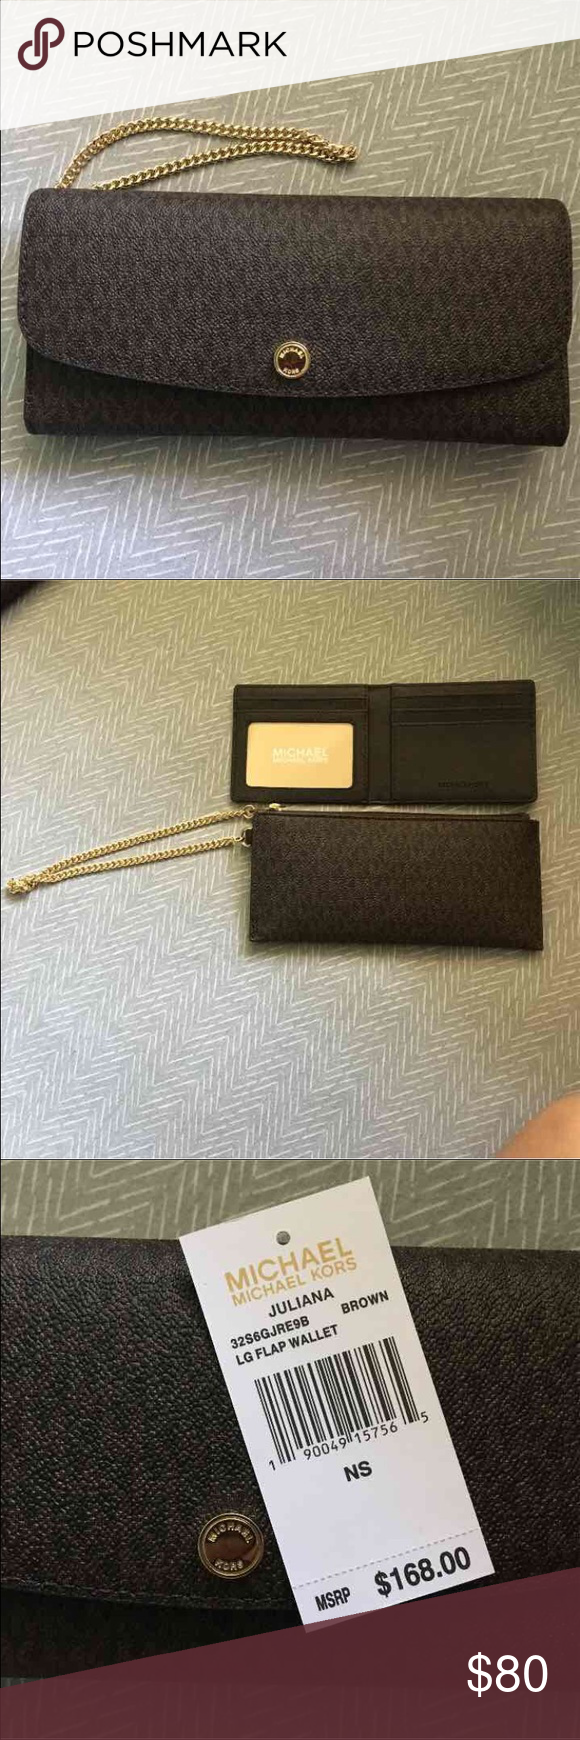 Michael Kors 3 Piece Wallet Brand new. Authentic. No trades. Michael Kors Bags Wallets